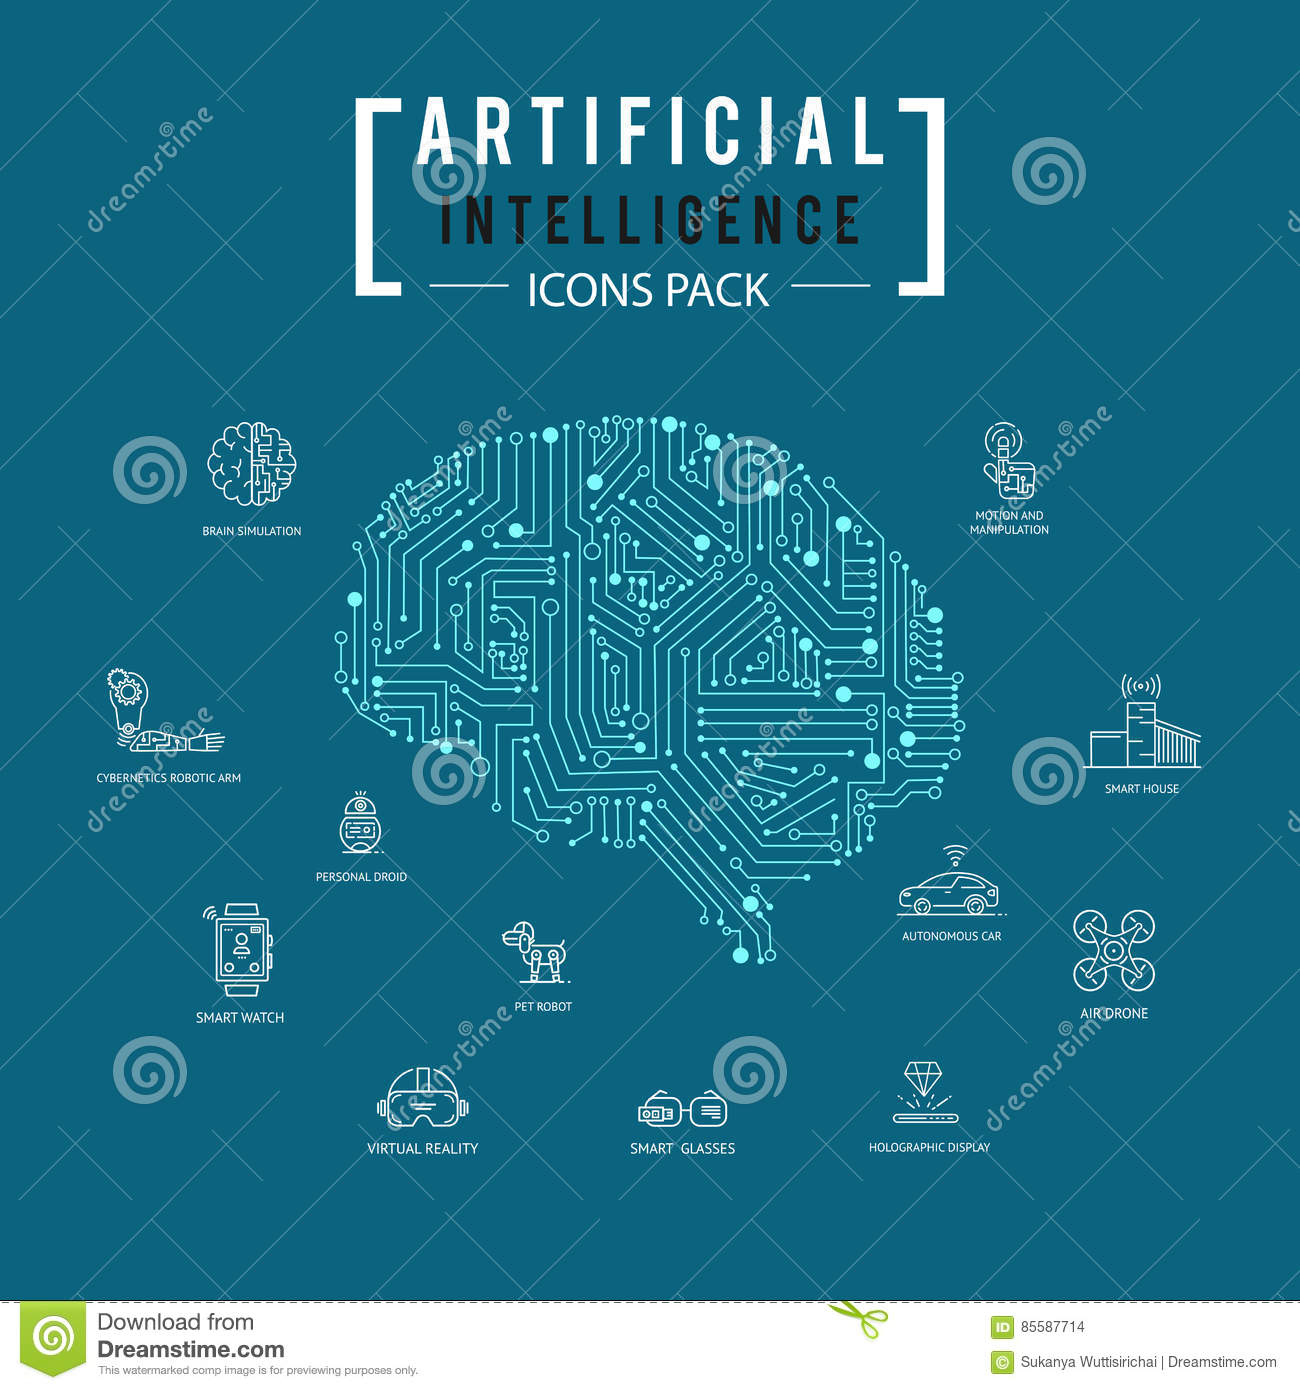 Paquete del icono de la inteligencia artificial del cerebro